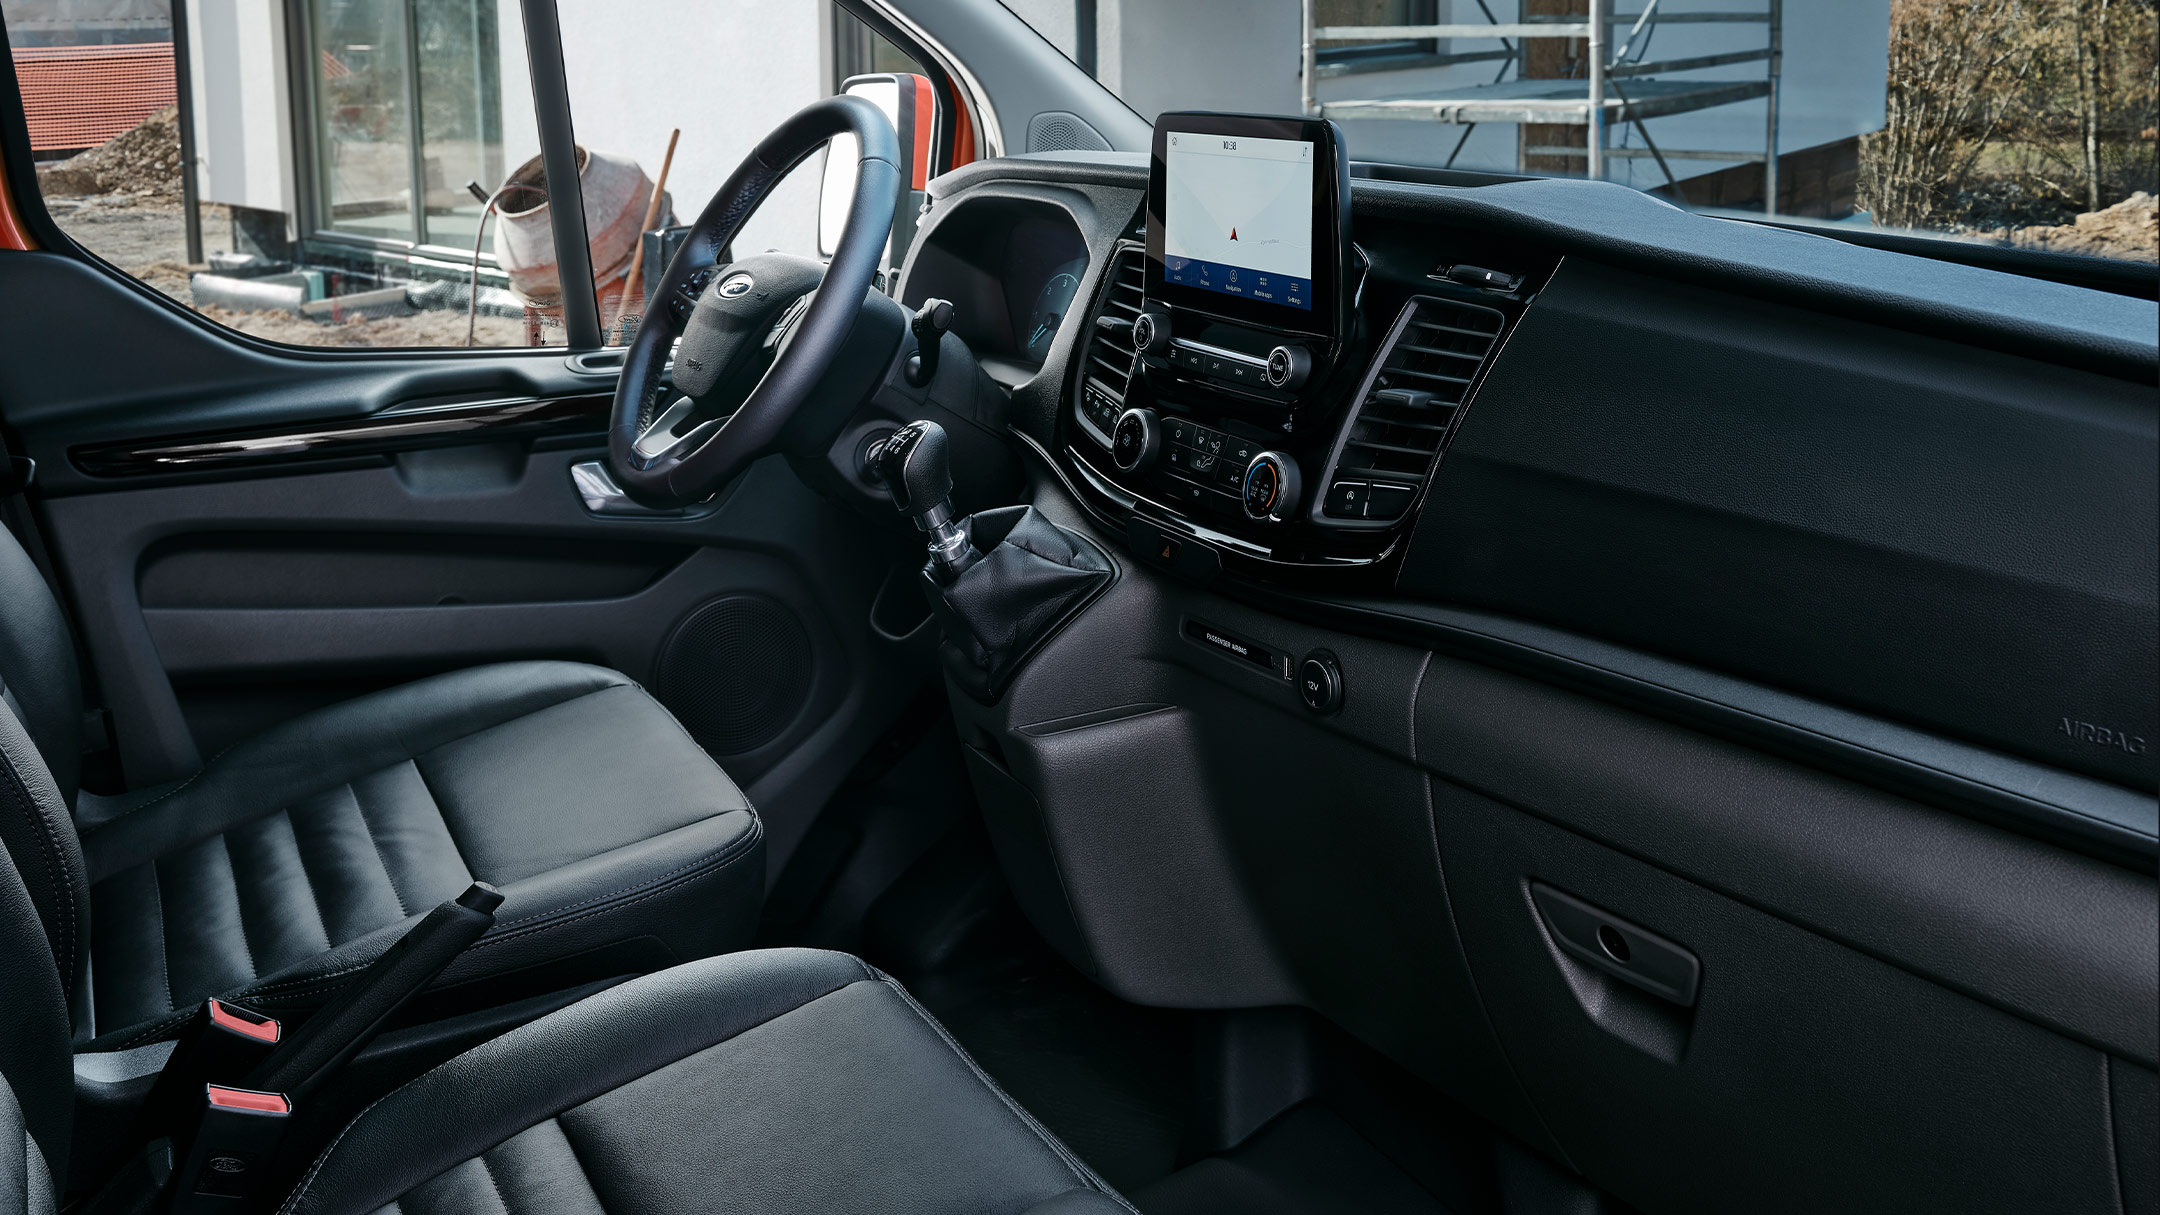 New Ford Transit Custom Trail Interior with dashboard and steering wheel